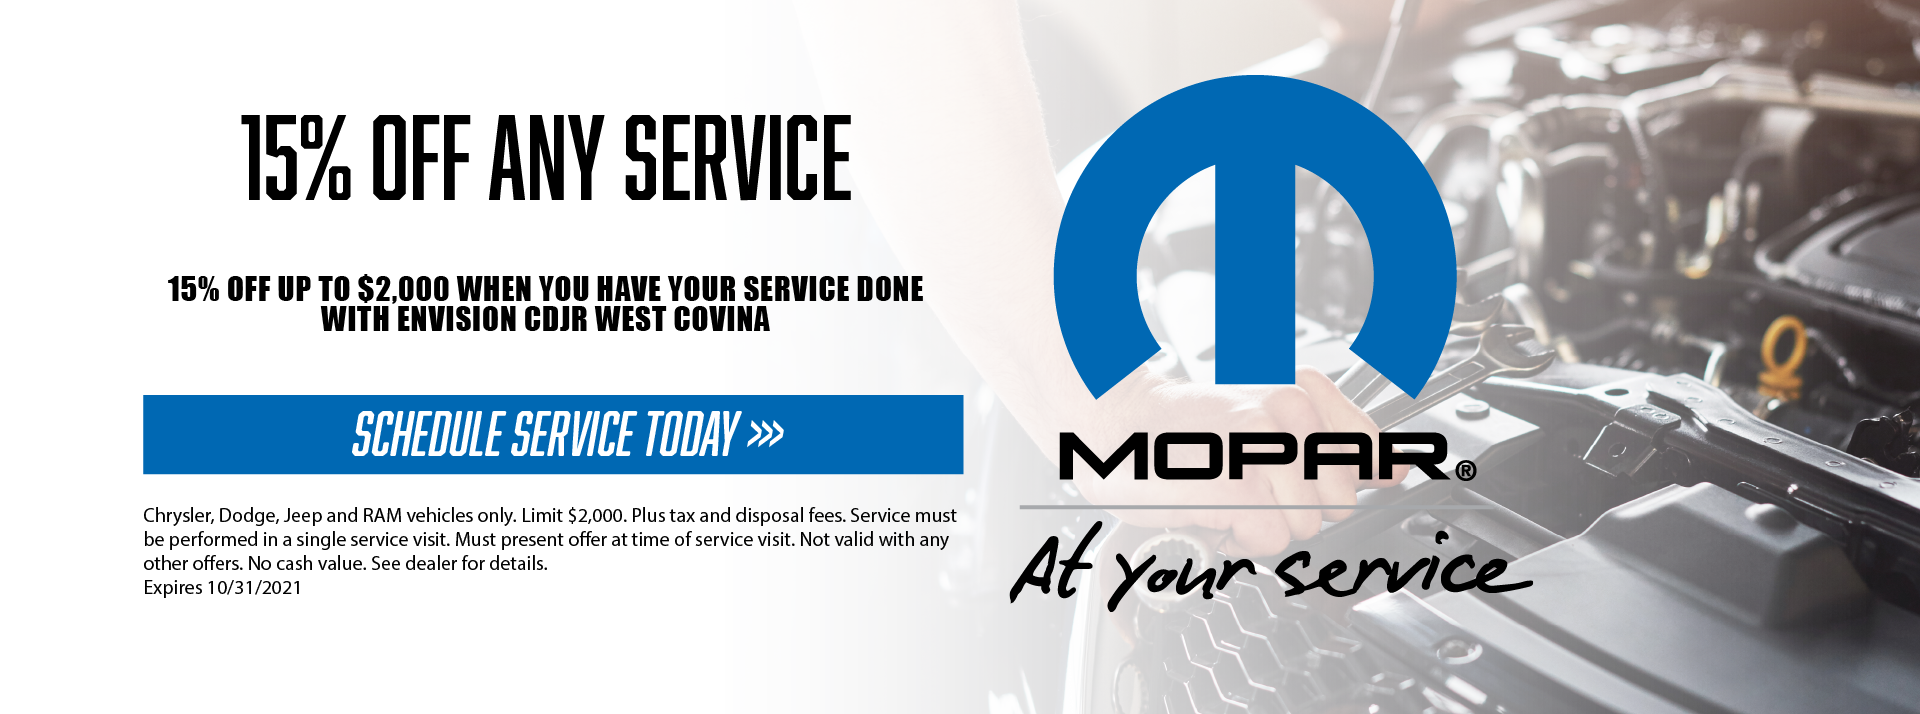 15 off any service